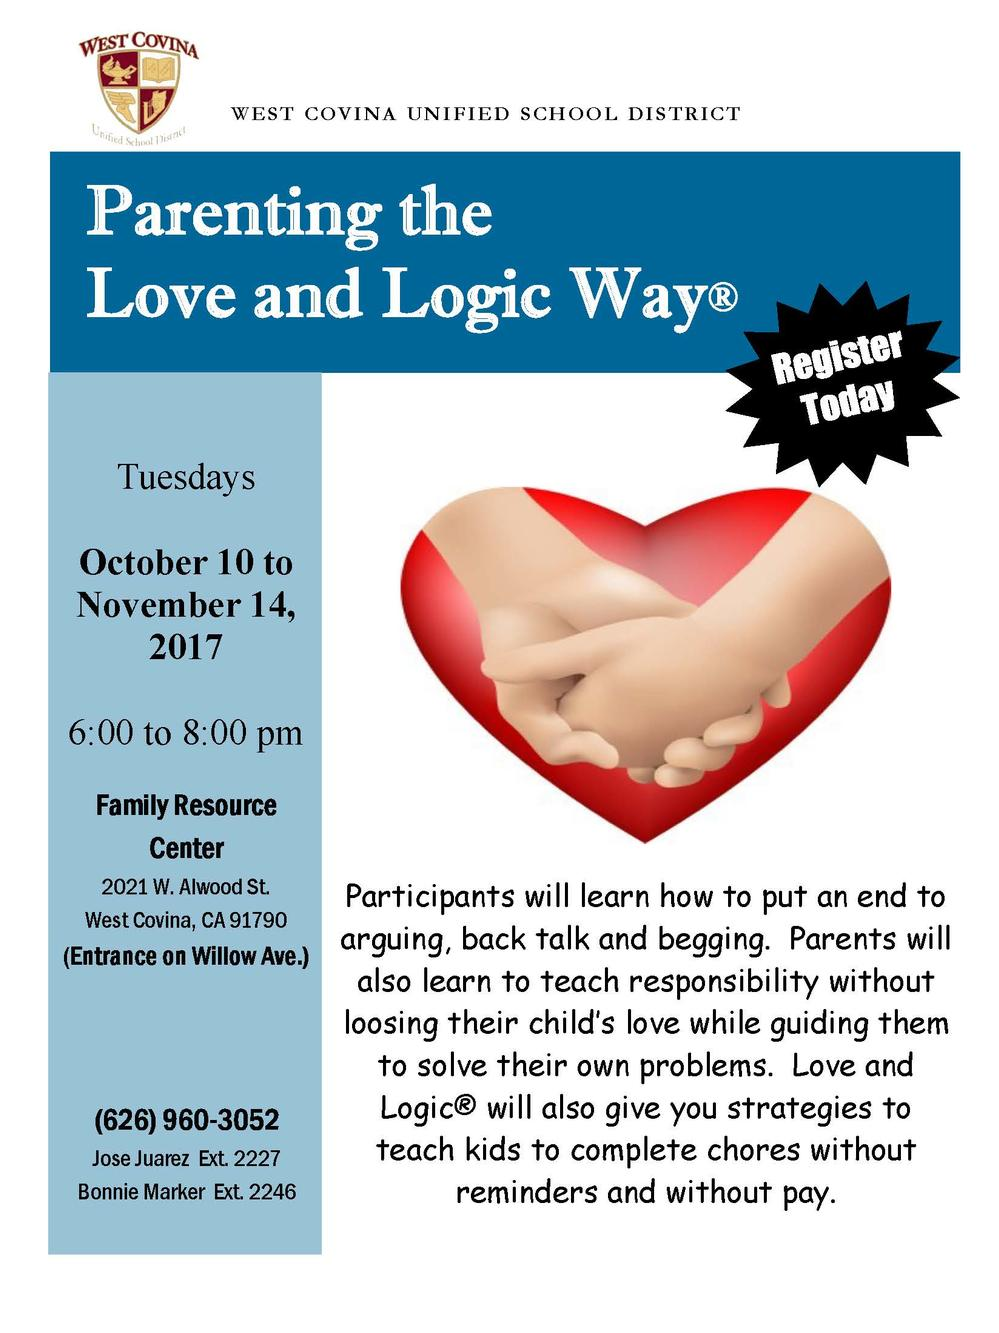 Parenting the Love and Logic Way Flyer